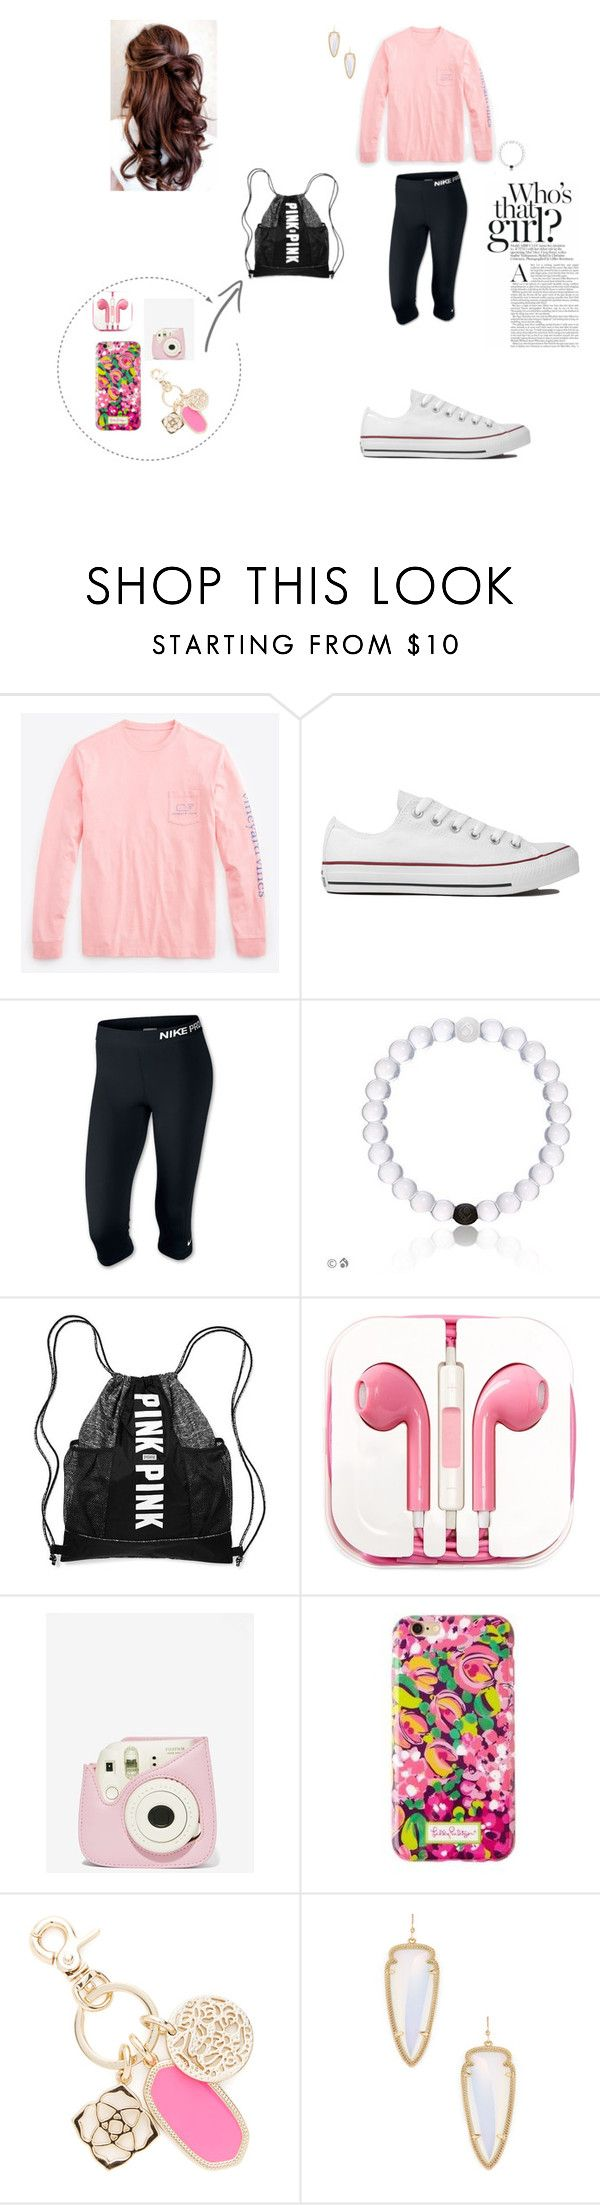 """vinyard vines 3"" by kailey-claire on Polyvore featuring Vineyard Vines, Converse, NIKE, PhunkeeTree and Kendra Scott"